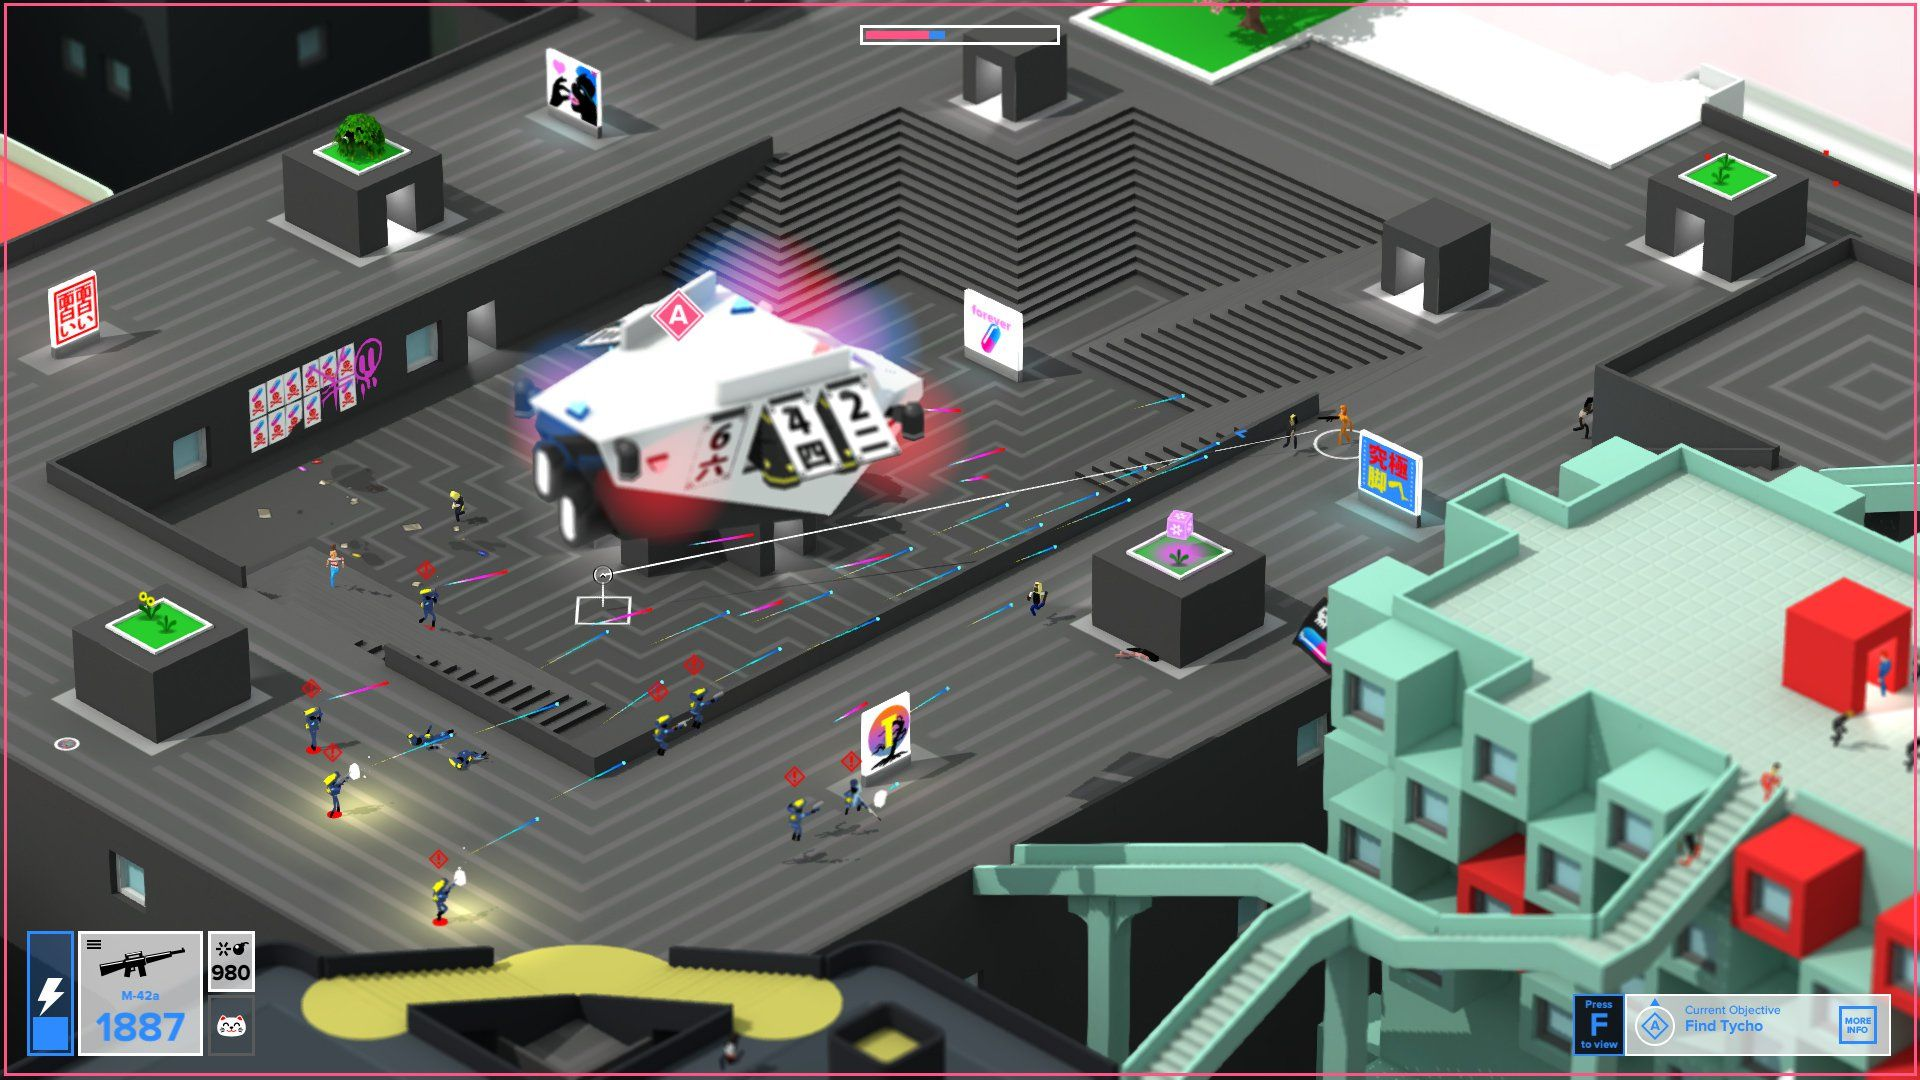 Tokyo 42 is a damn cool take on Syndicate and classic GTA: As a modern take on the original Grand Theft Auto and Syndicate with some lovely…